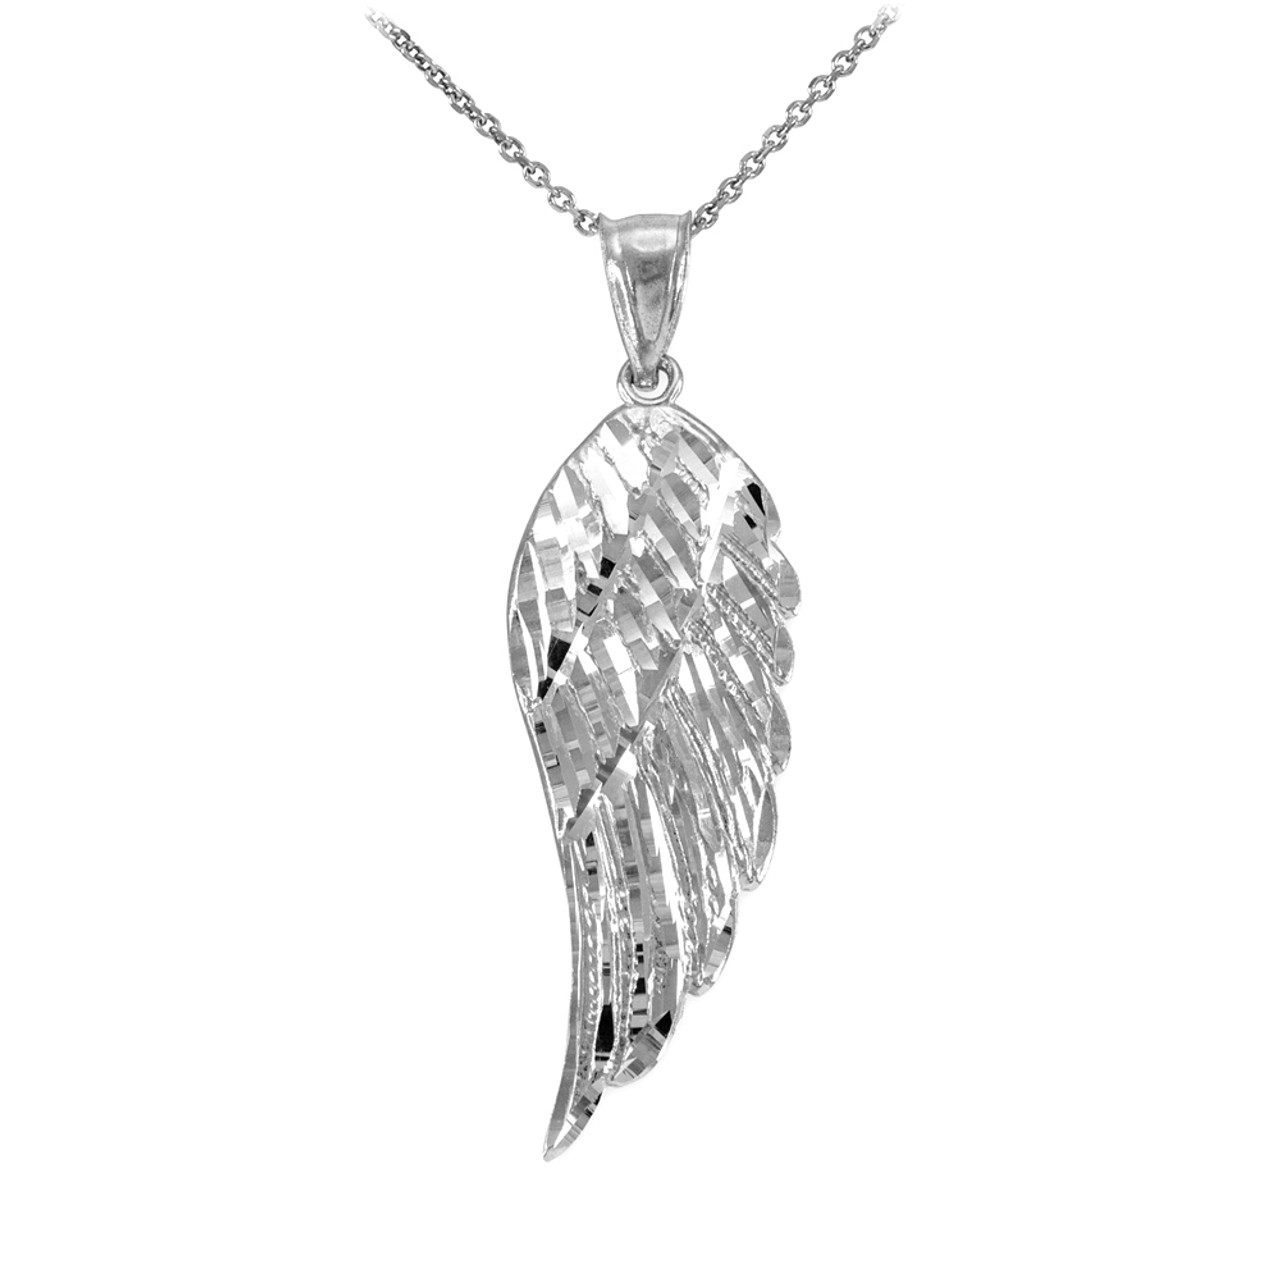 bling jewelry az necklace angel wings pendant silver inch wing tone sterling heart pave cz yly b guardian